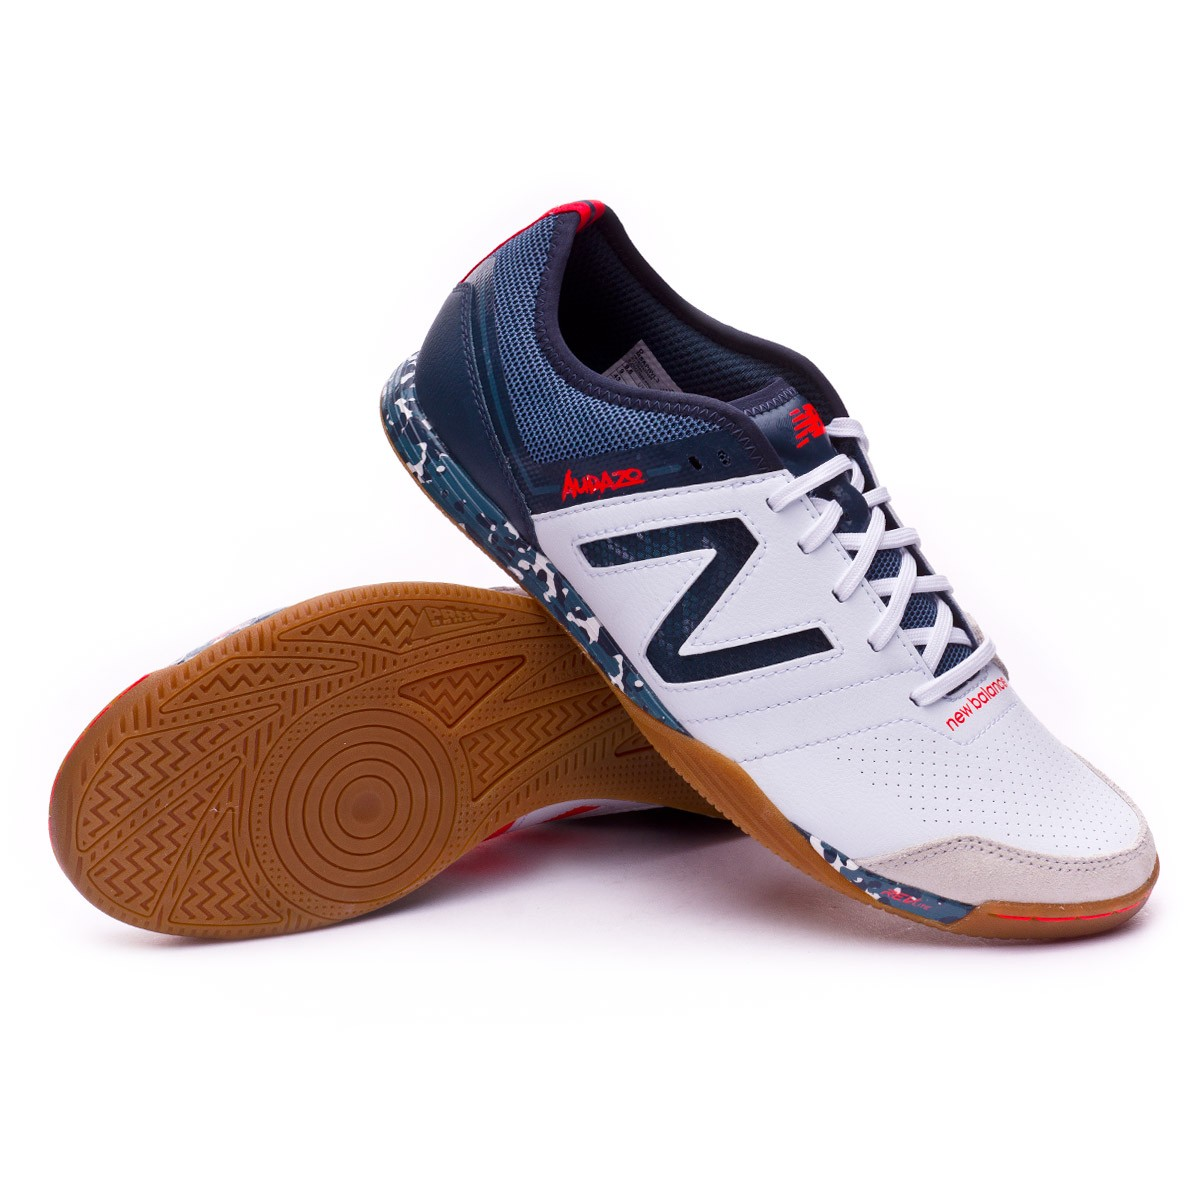 61bffd57c0403 Futsal Boot New Balance Audazo Pro 3.0 Futsal White-Grey - Football store  Fútbol Emotion